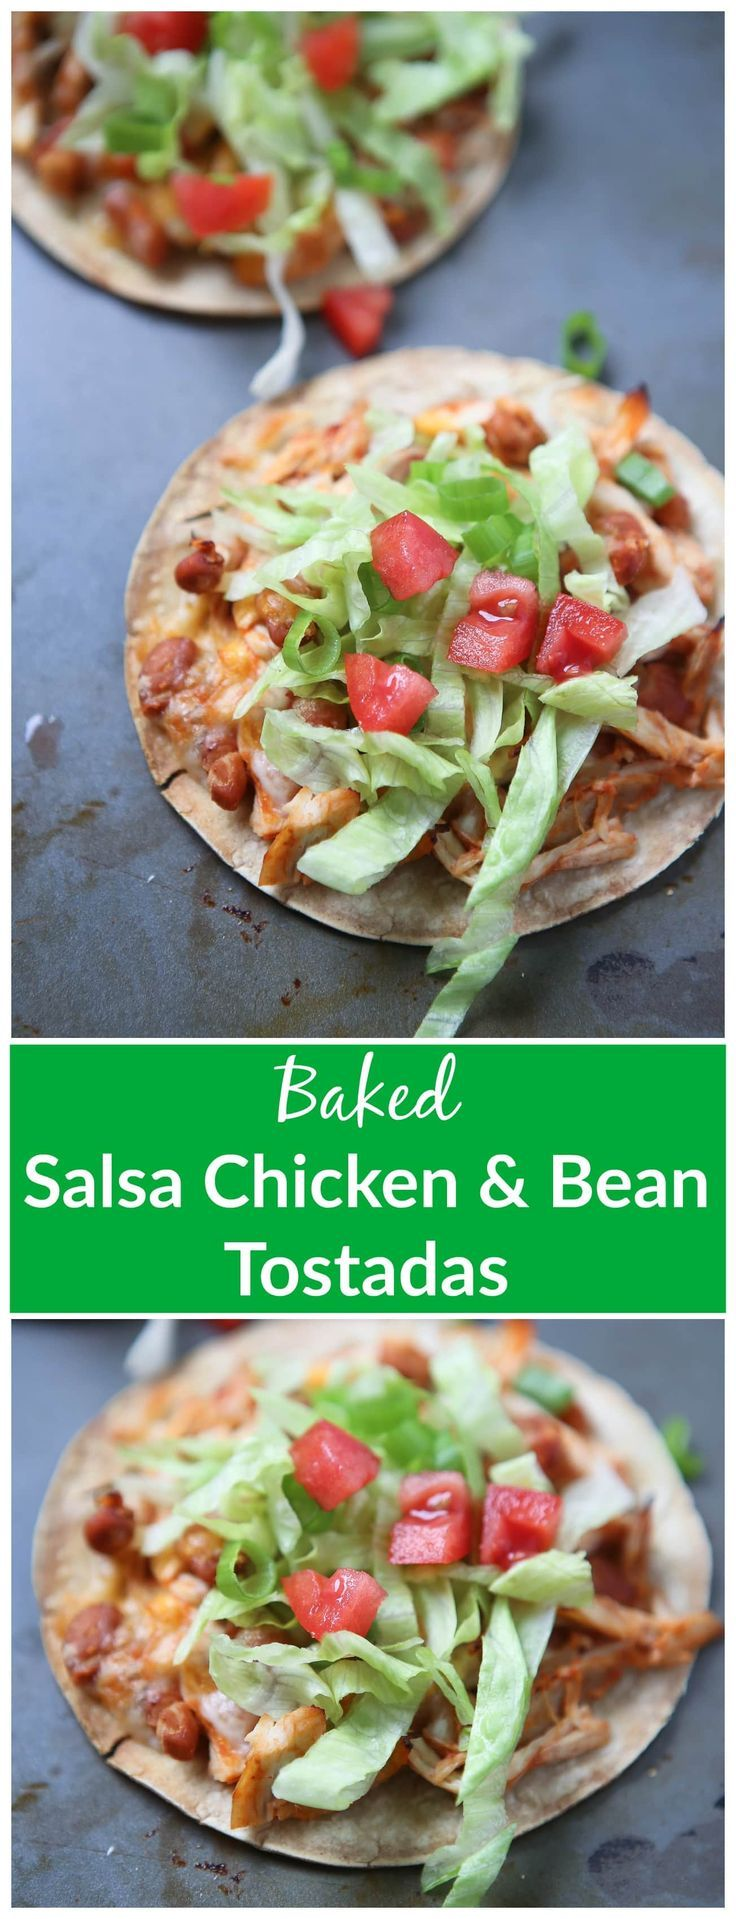 Simple Baked Salsa Chicken and Bean Tostadas - my family loves this dinner and it's a perfect recipe for any night of the week! via @aggieskitchen